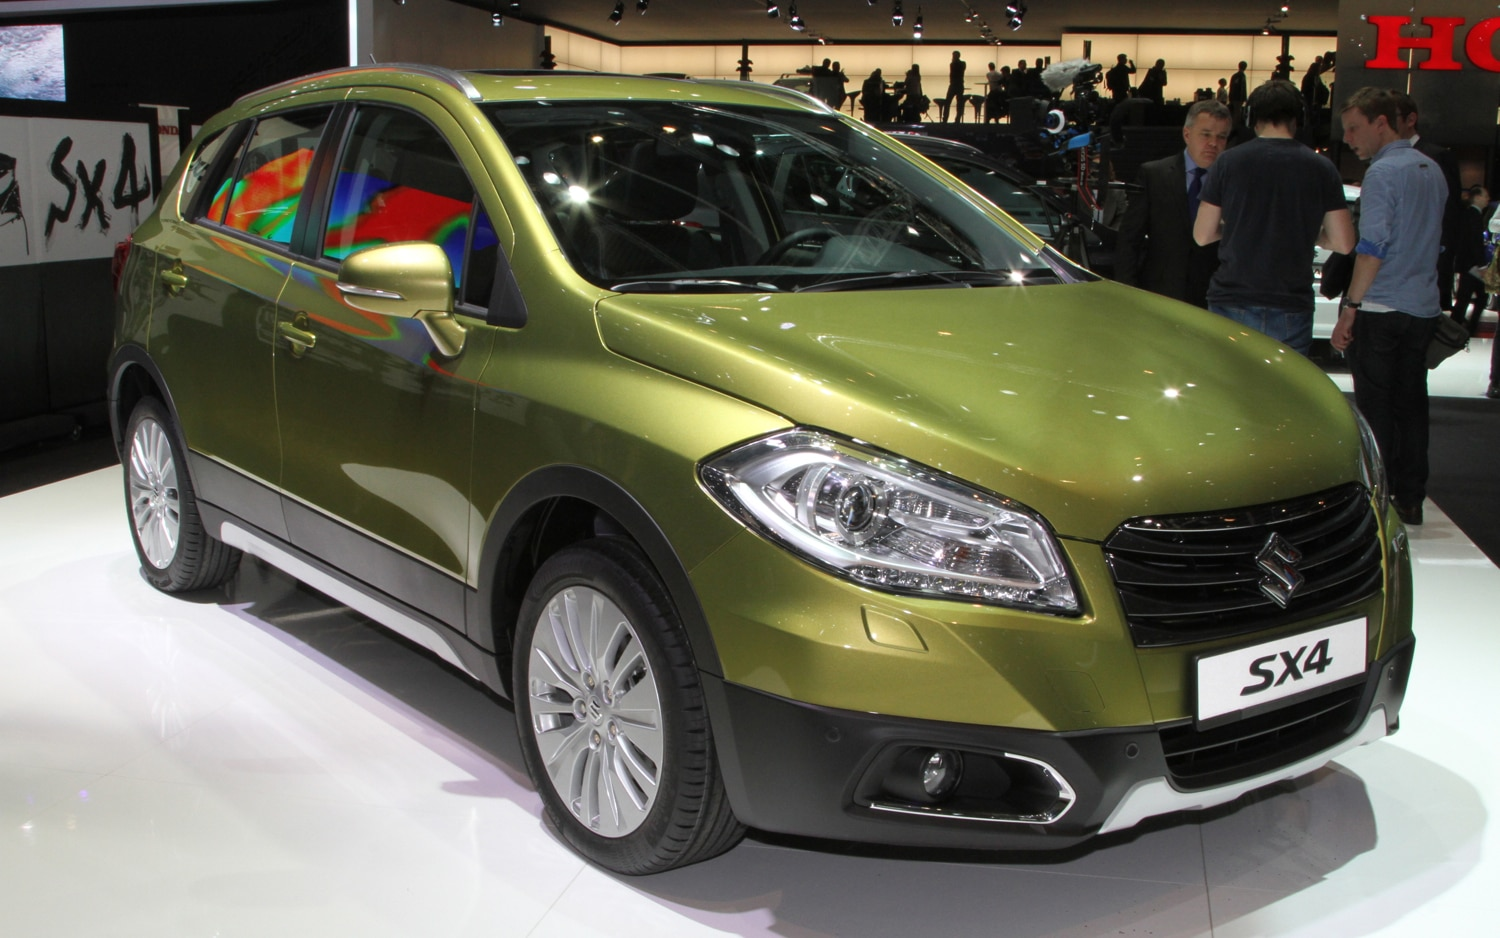 geneva 2013 suzuki facelifts sx4 crossover. Black Bedroom Furniture Sets. Home Design Ideas